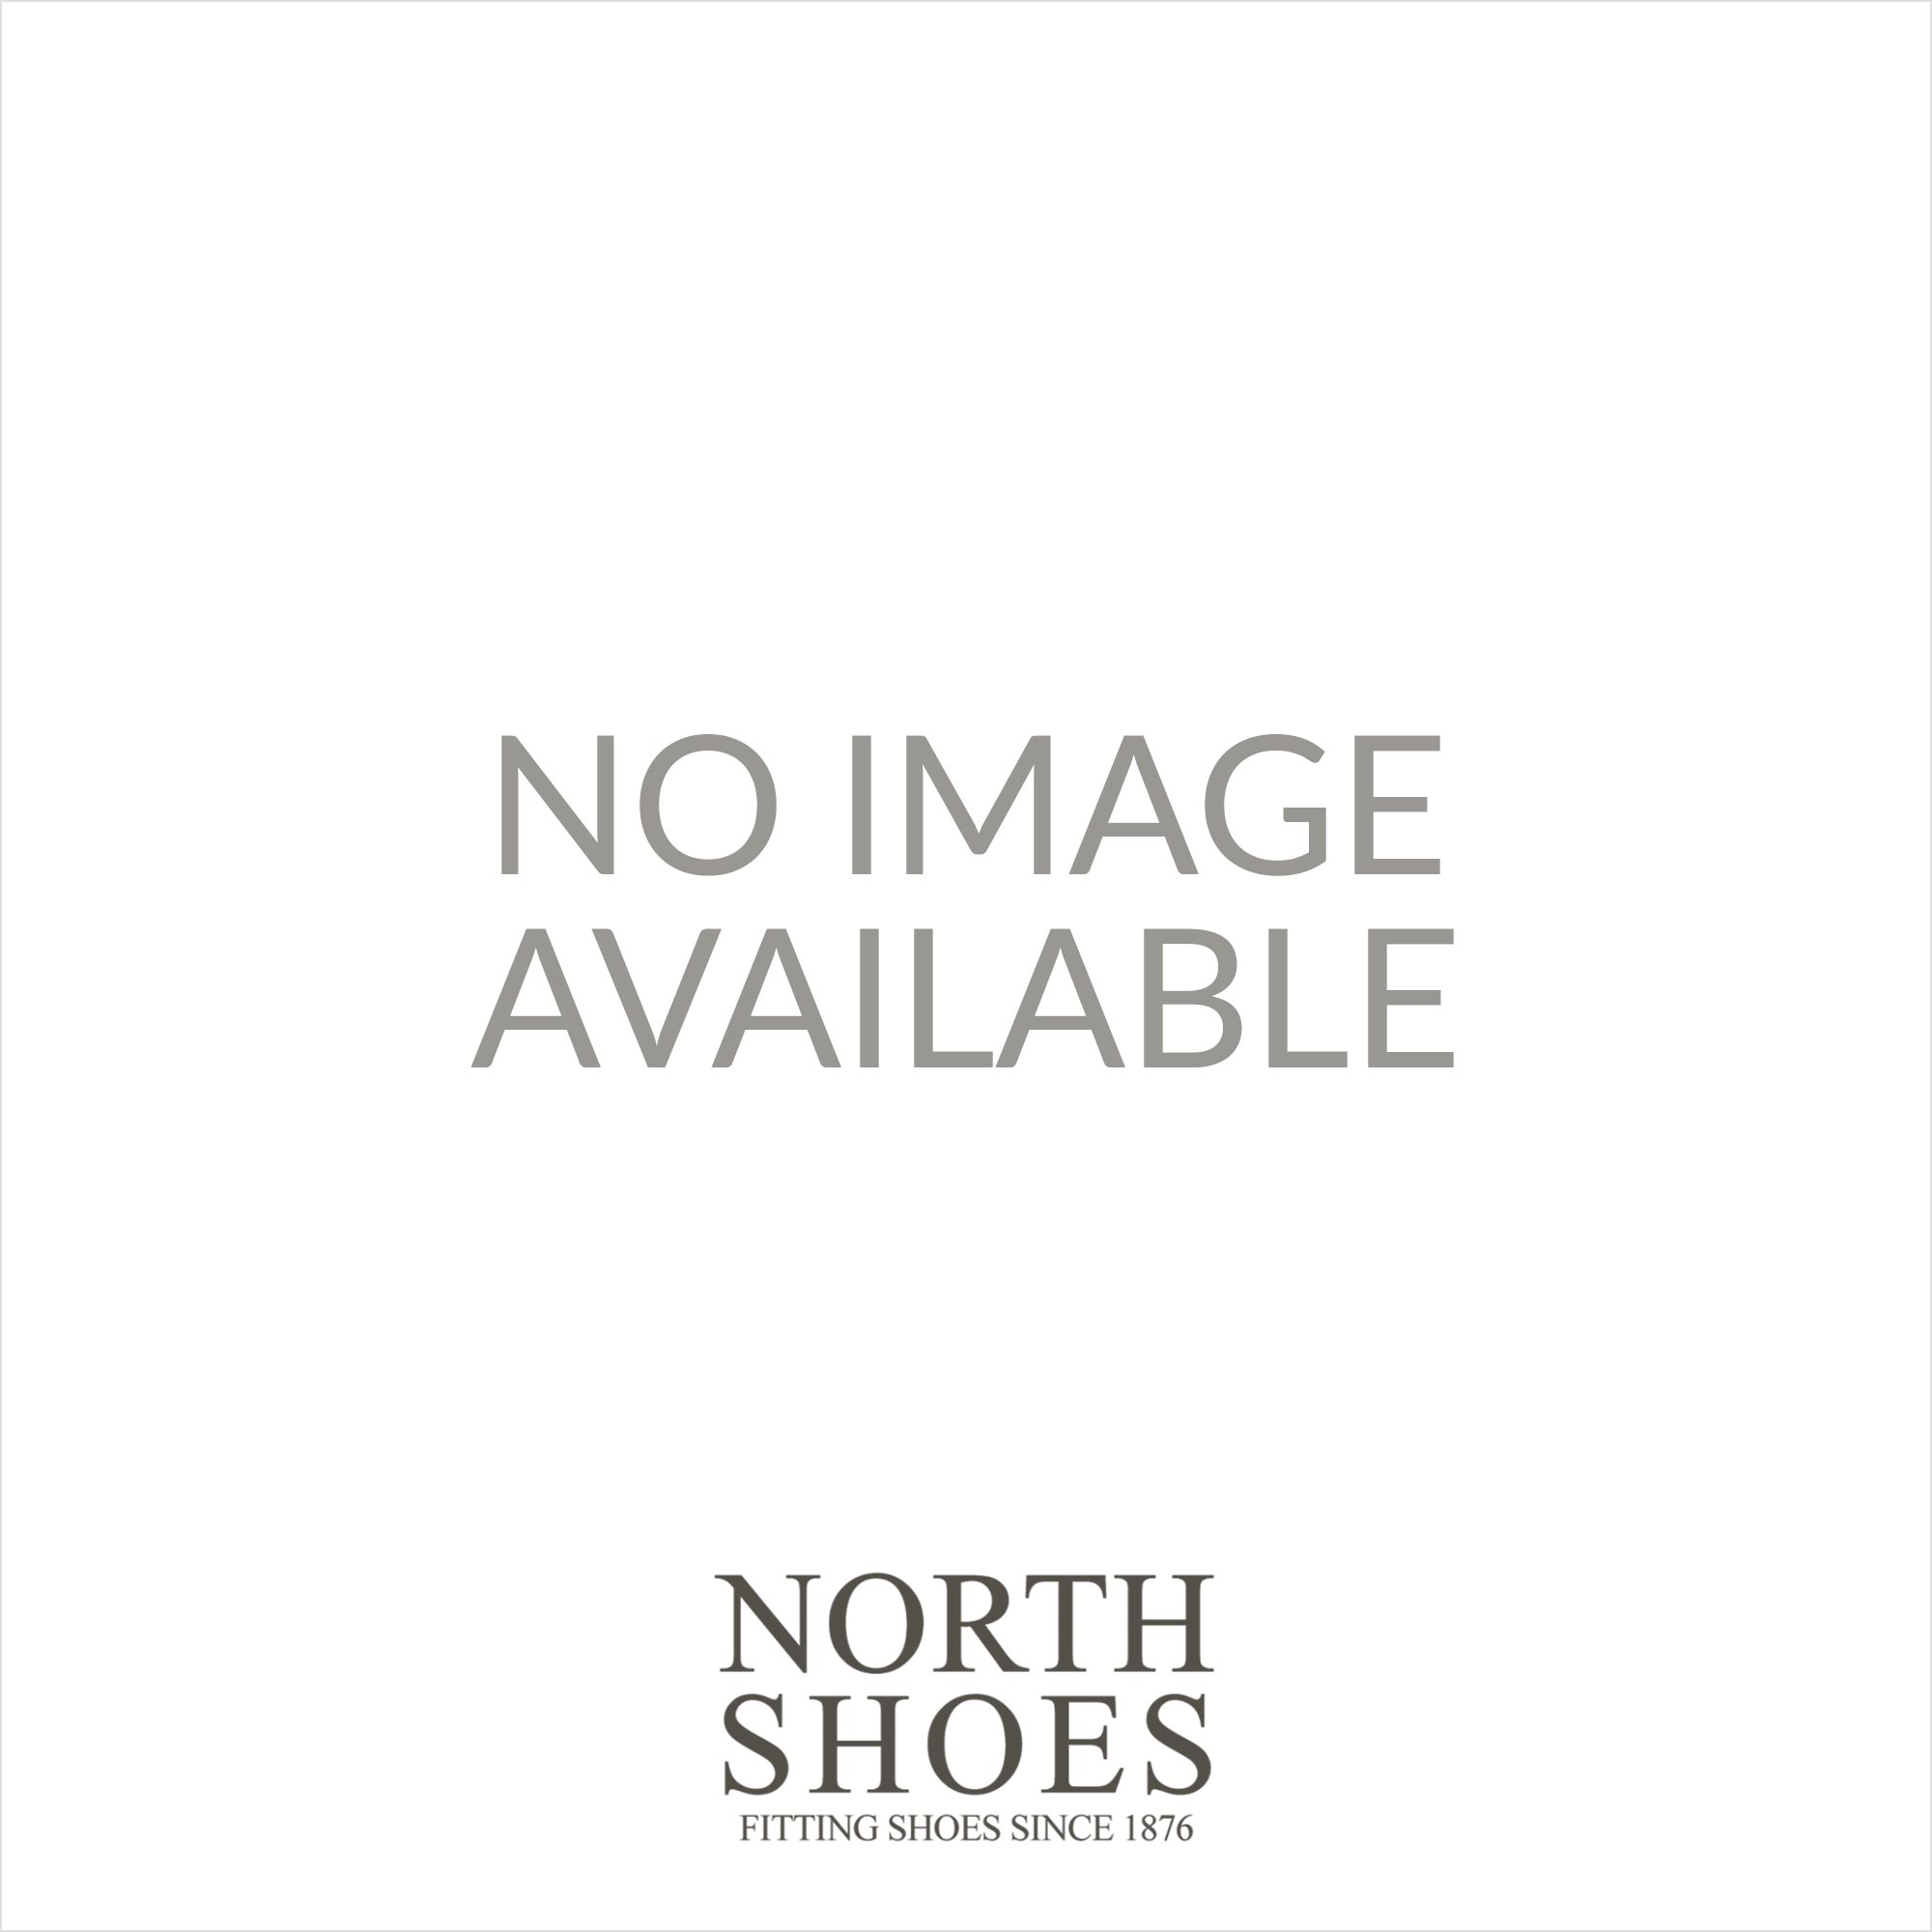 0d06f842500a Fitflop Chrissie Shearling Tan Suede Leather Womens Slip On Mule Slipper -  Fitflop from North Shoes UK